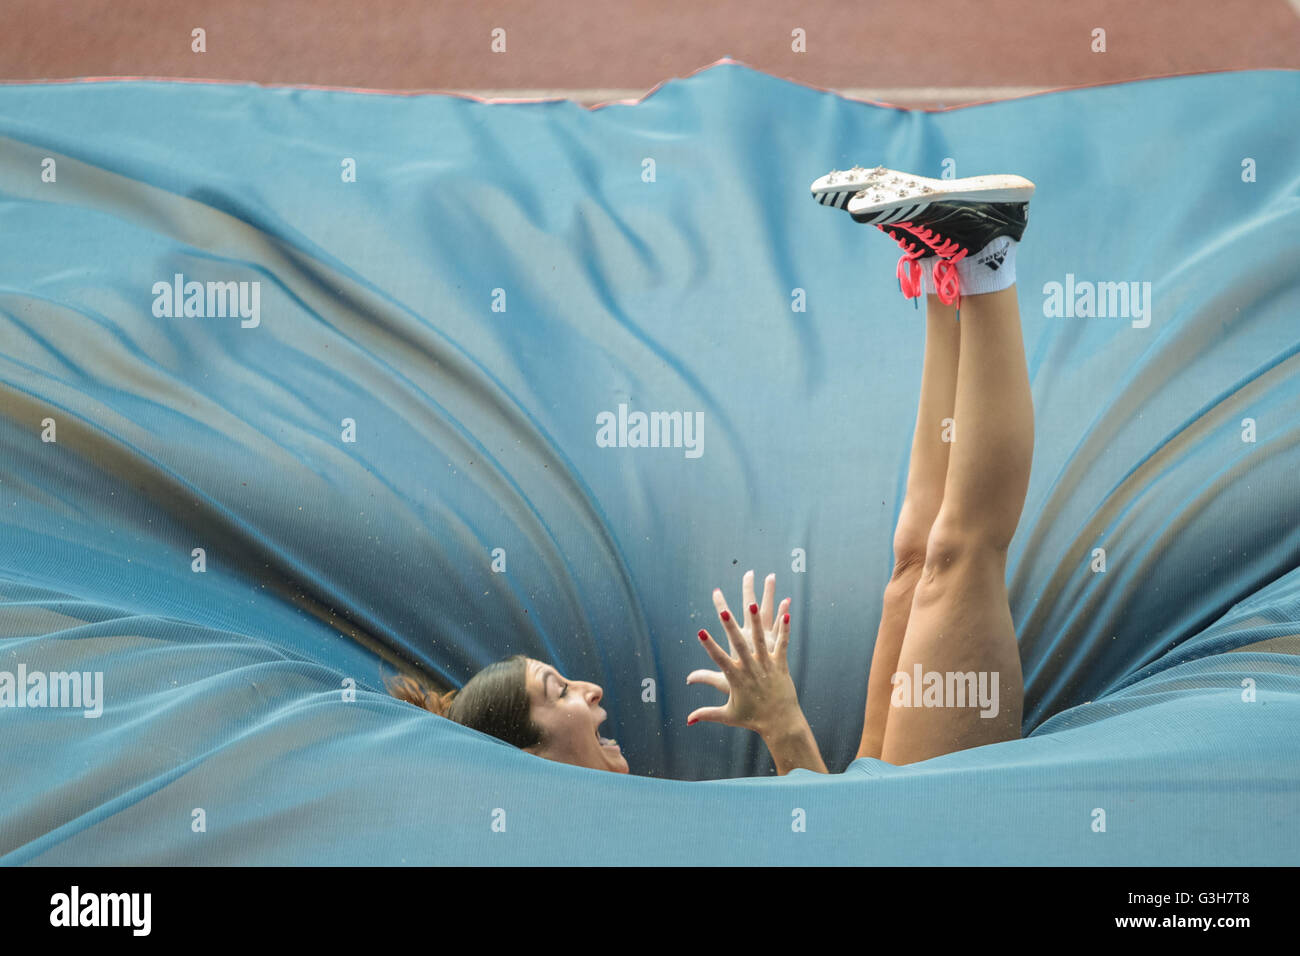 Pole vault athlete falls onto the crash mat during - Stock Image